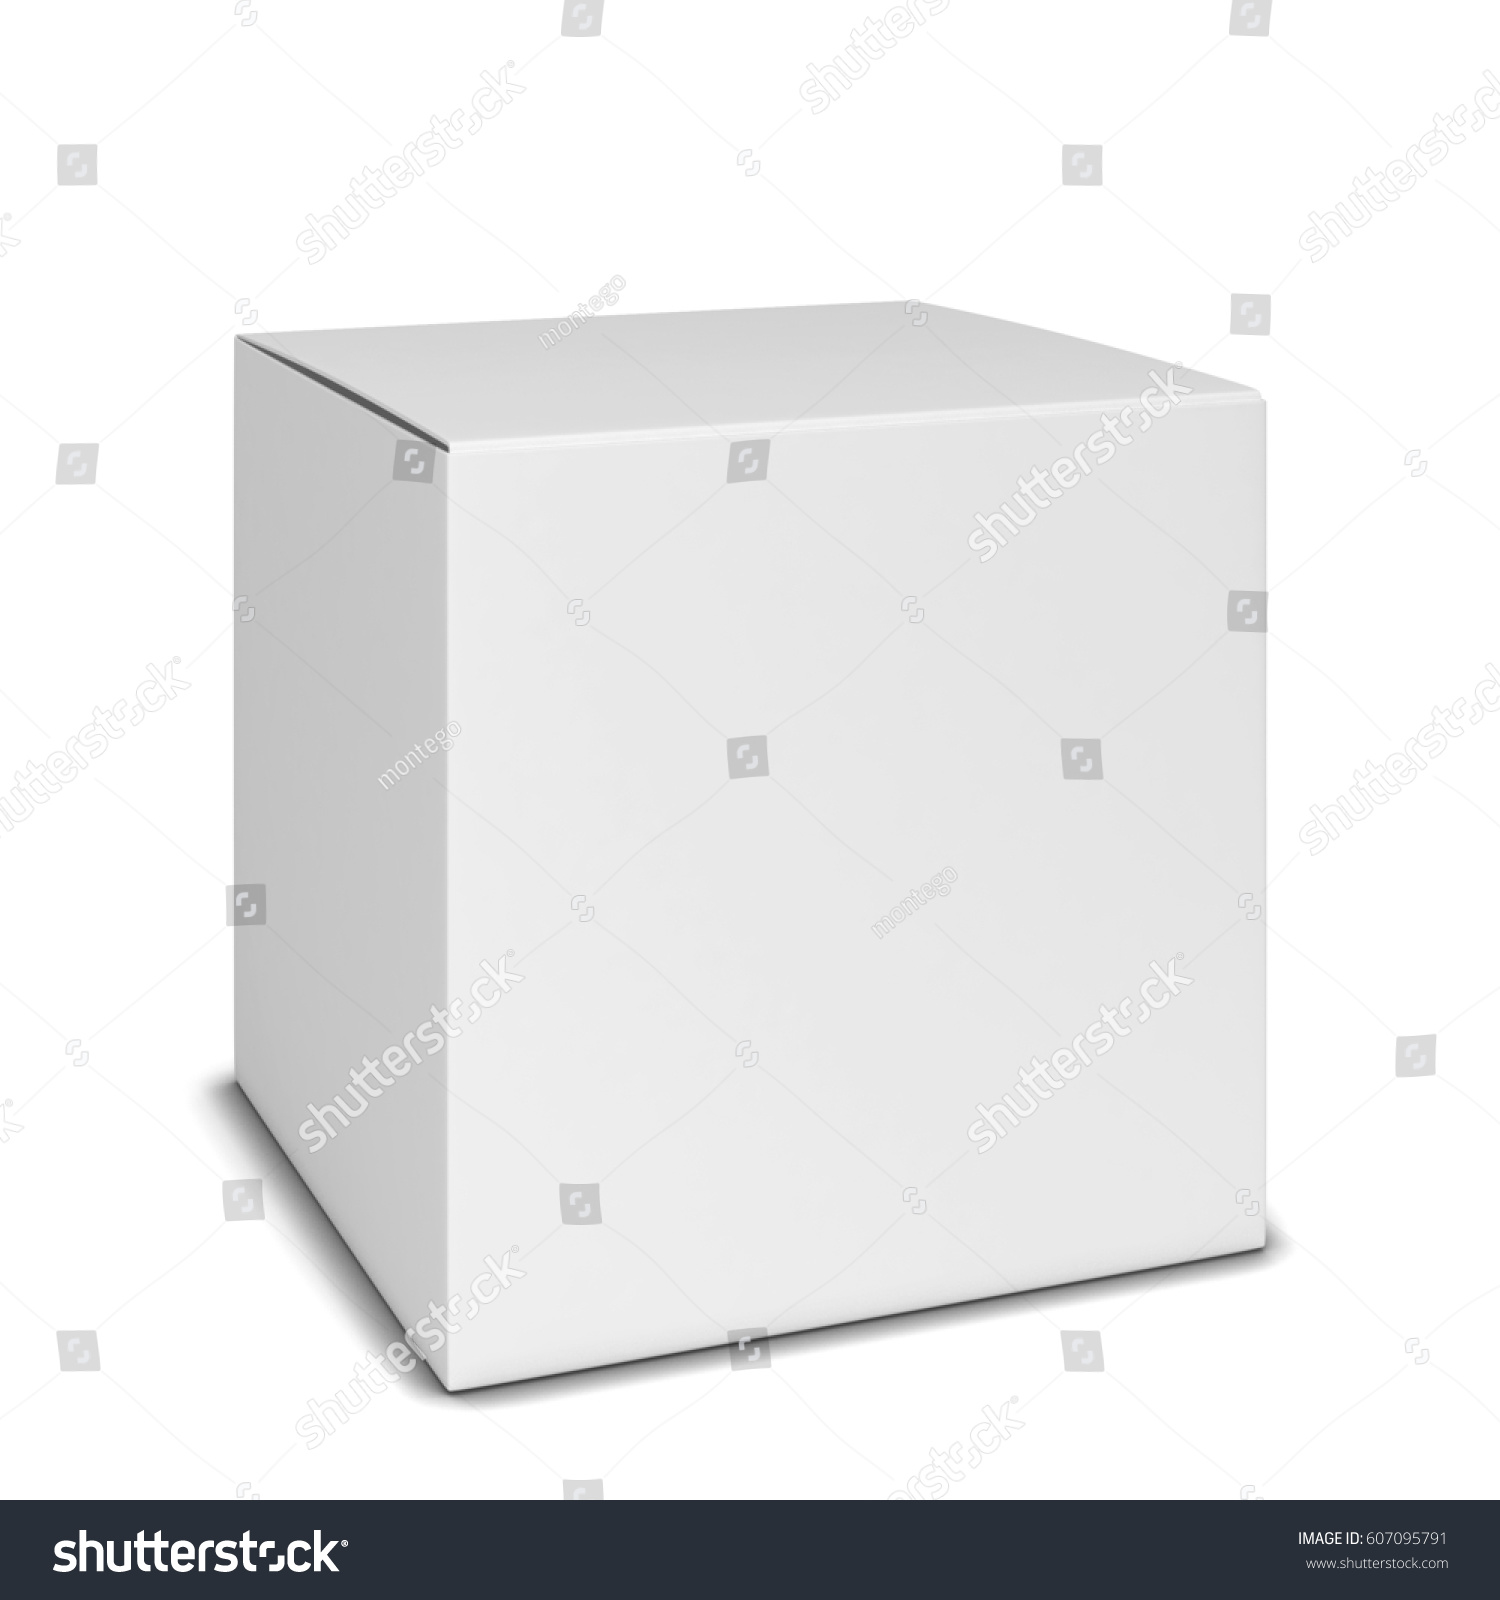 Square Box Blank Square Box 3 D Illustration Isolated Stockillustration